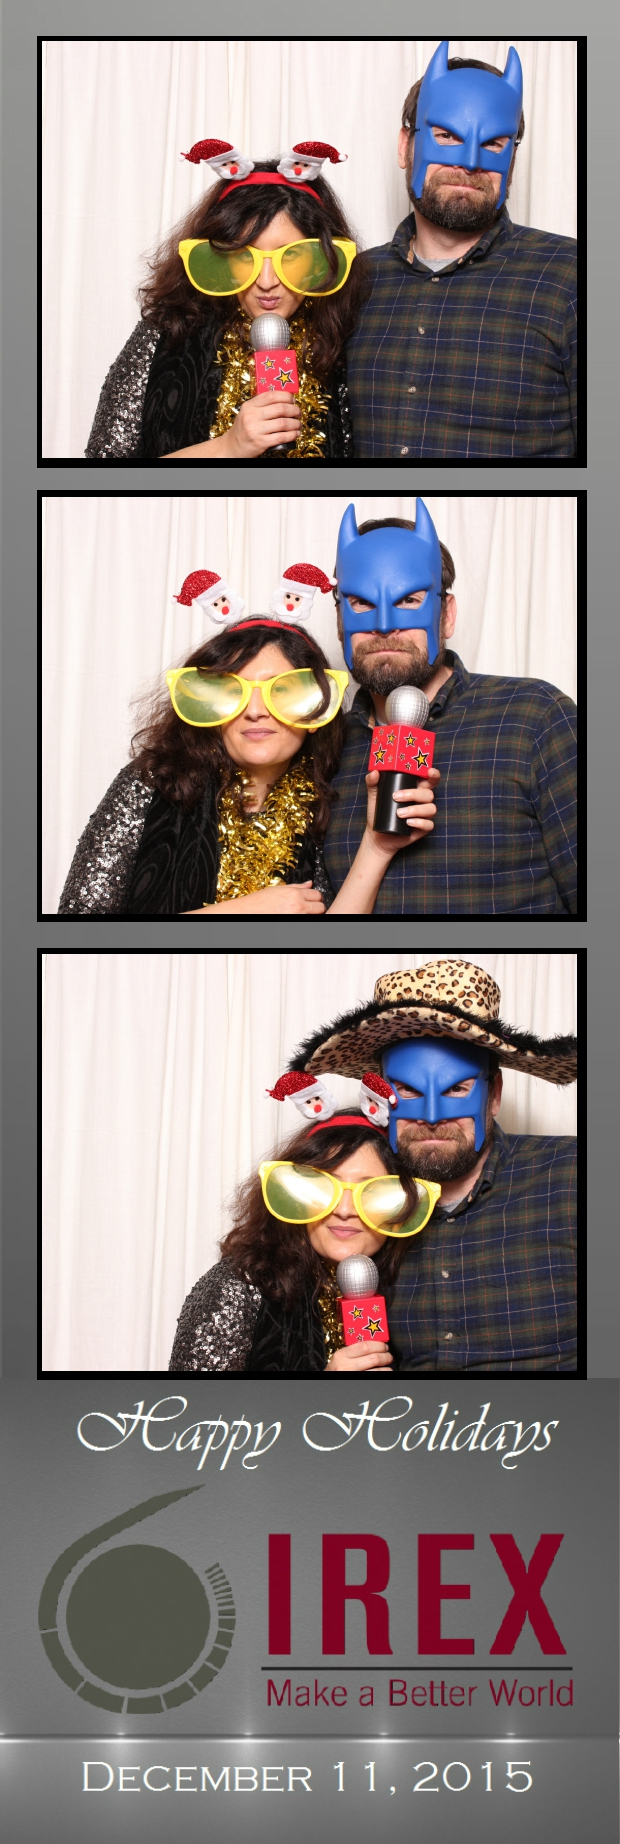 Guest House Events Photo Booth Strips IREX (80).jpg